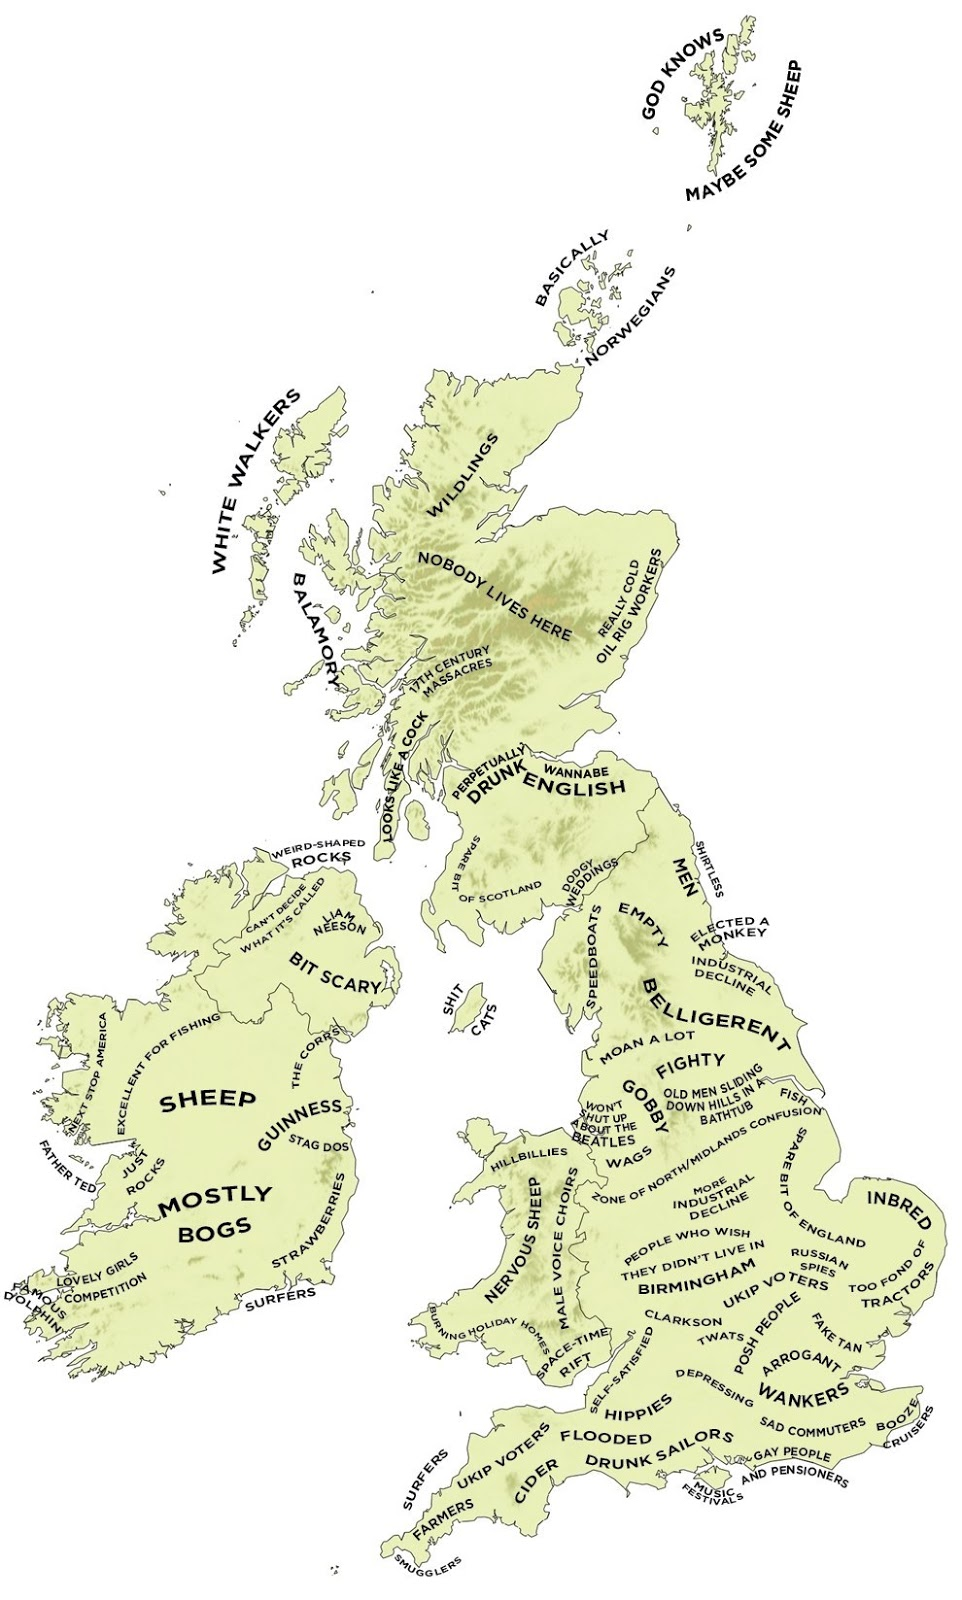 Stereotype map of Britain & Ireland